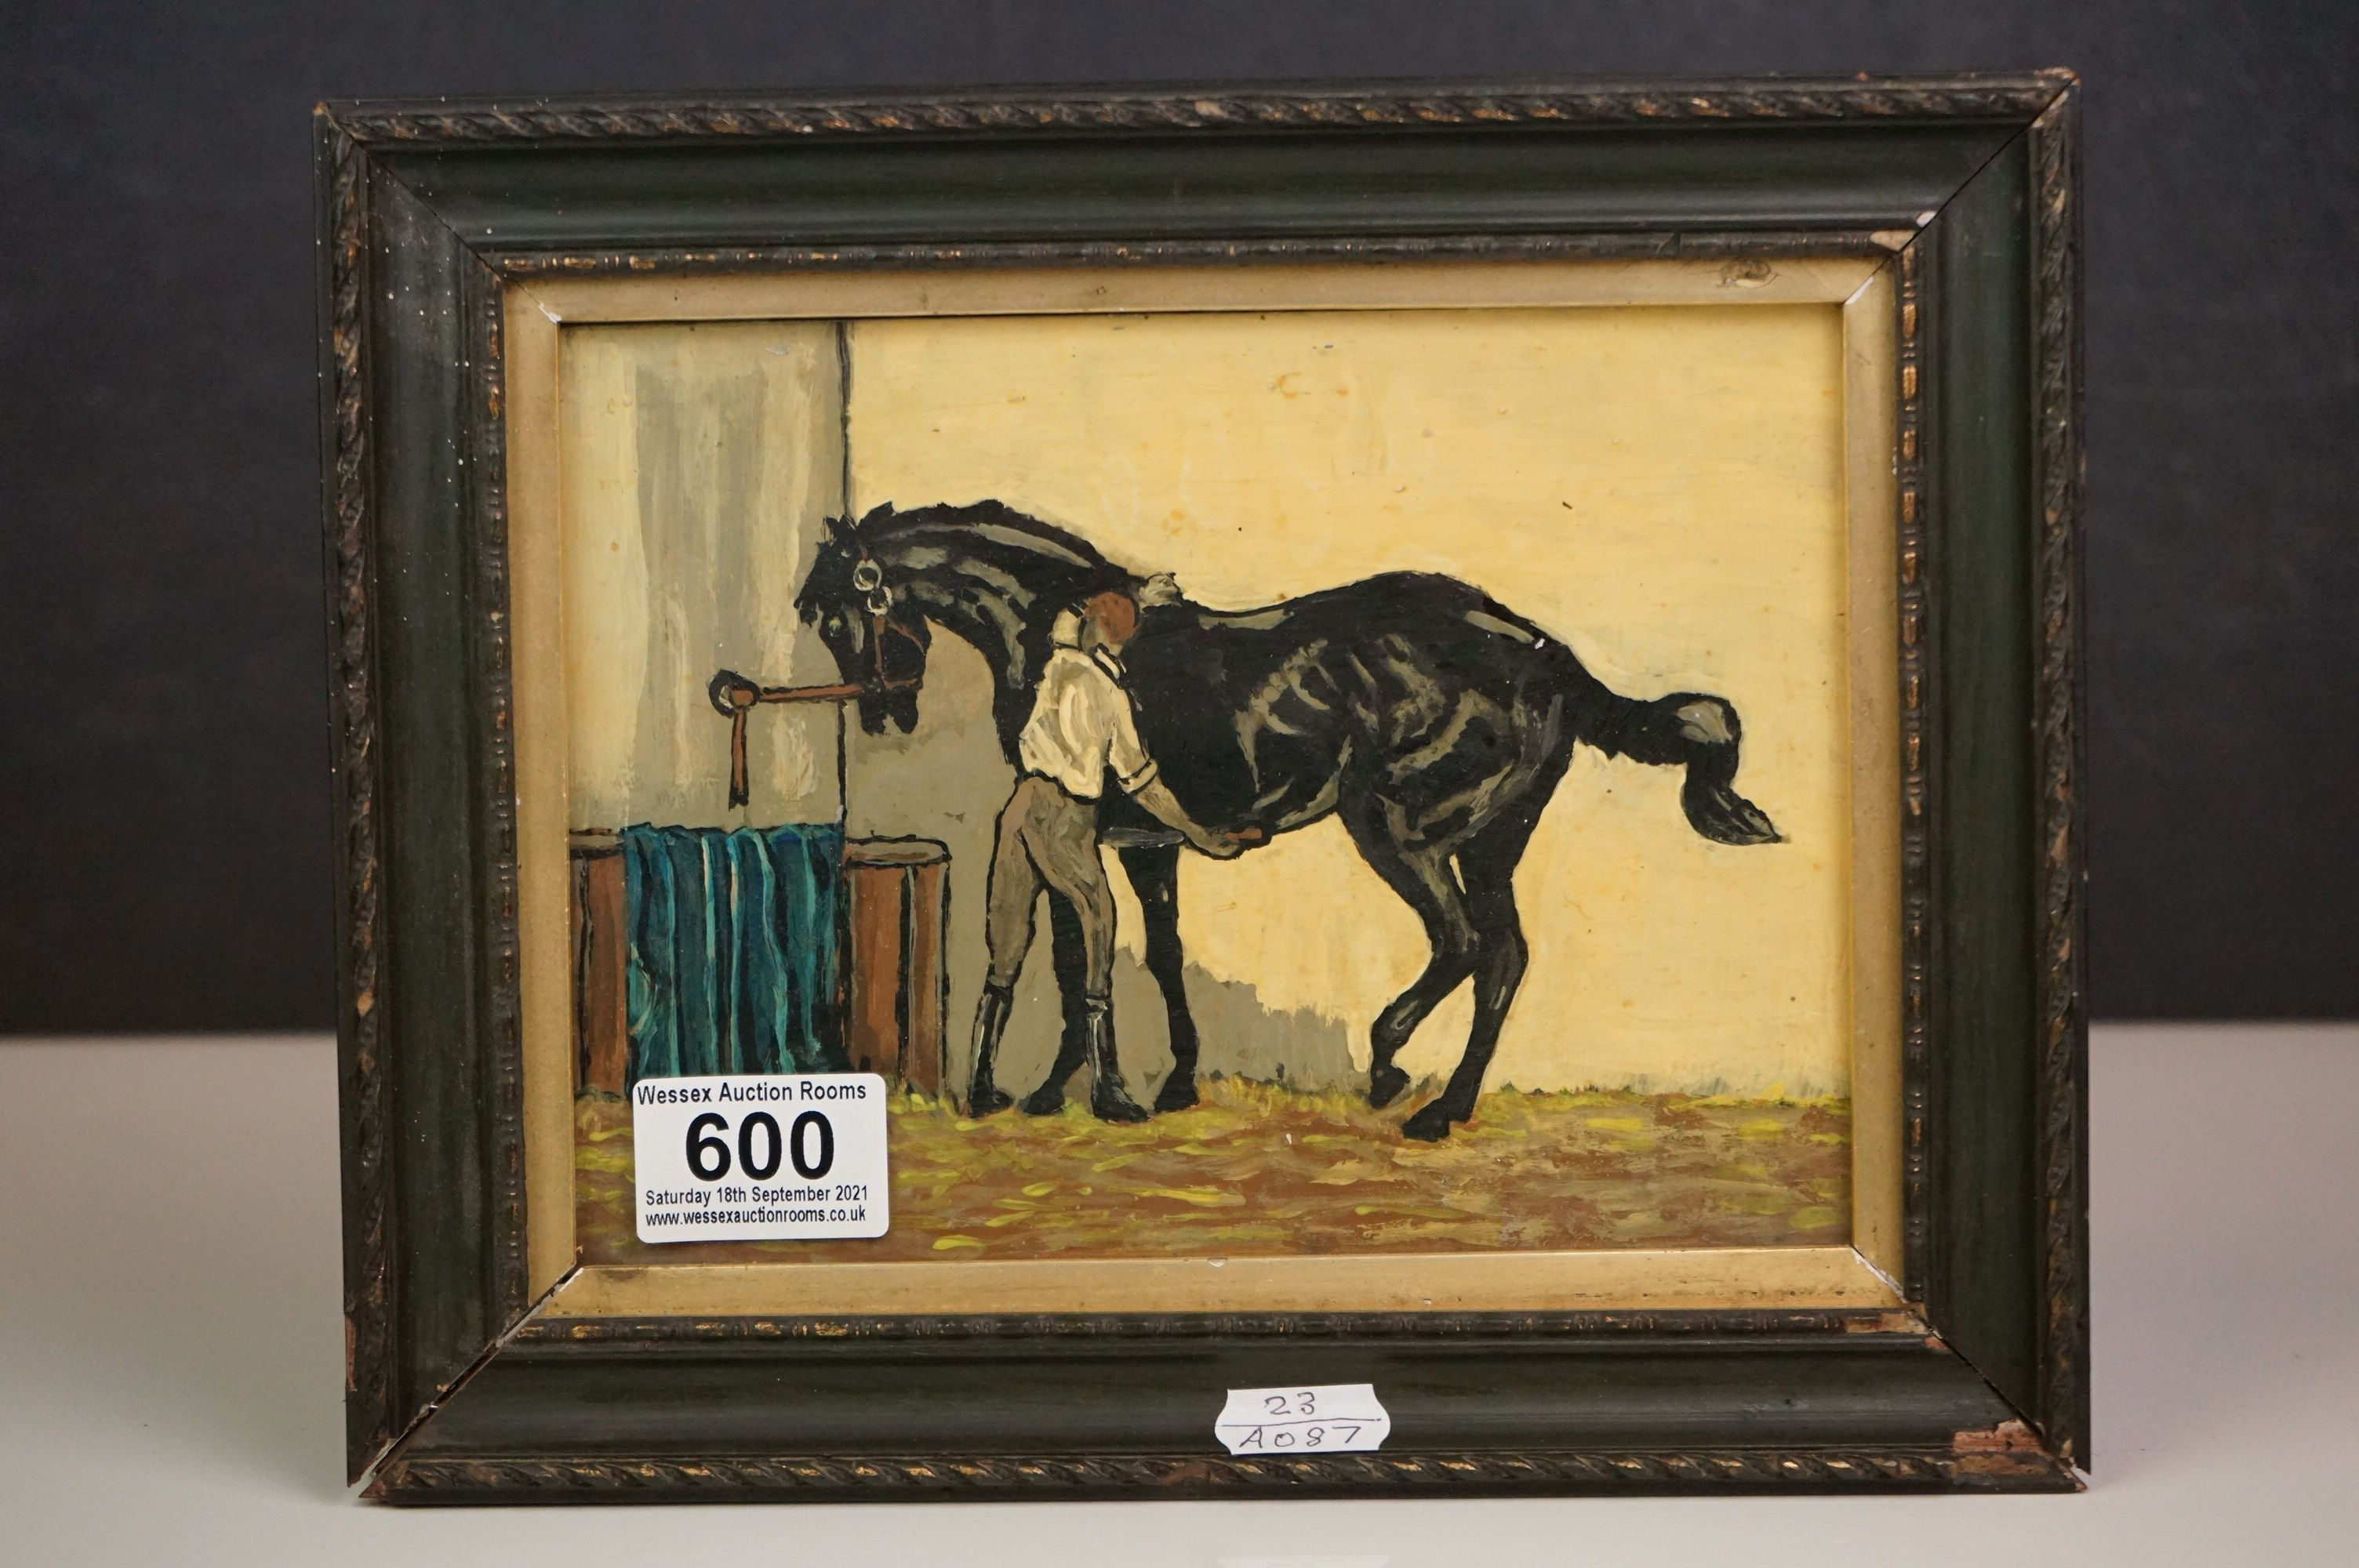 Oil painting of a racehorse and groom